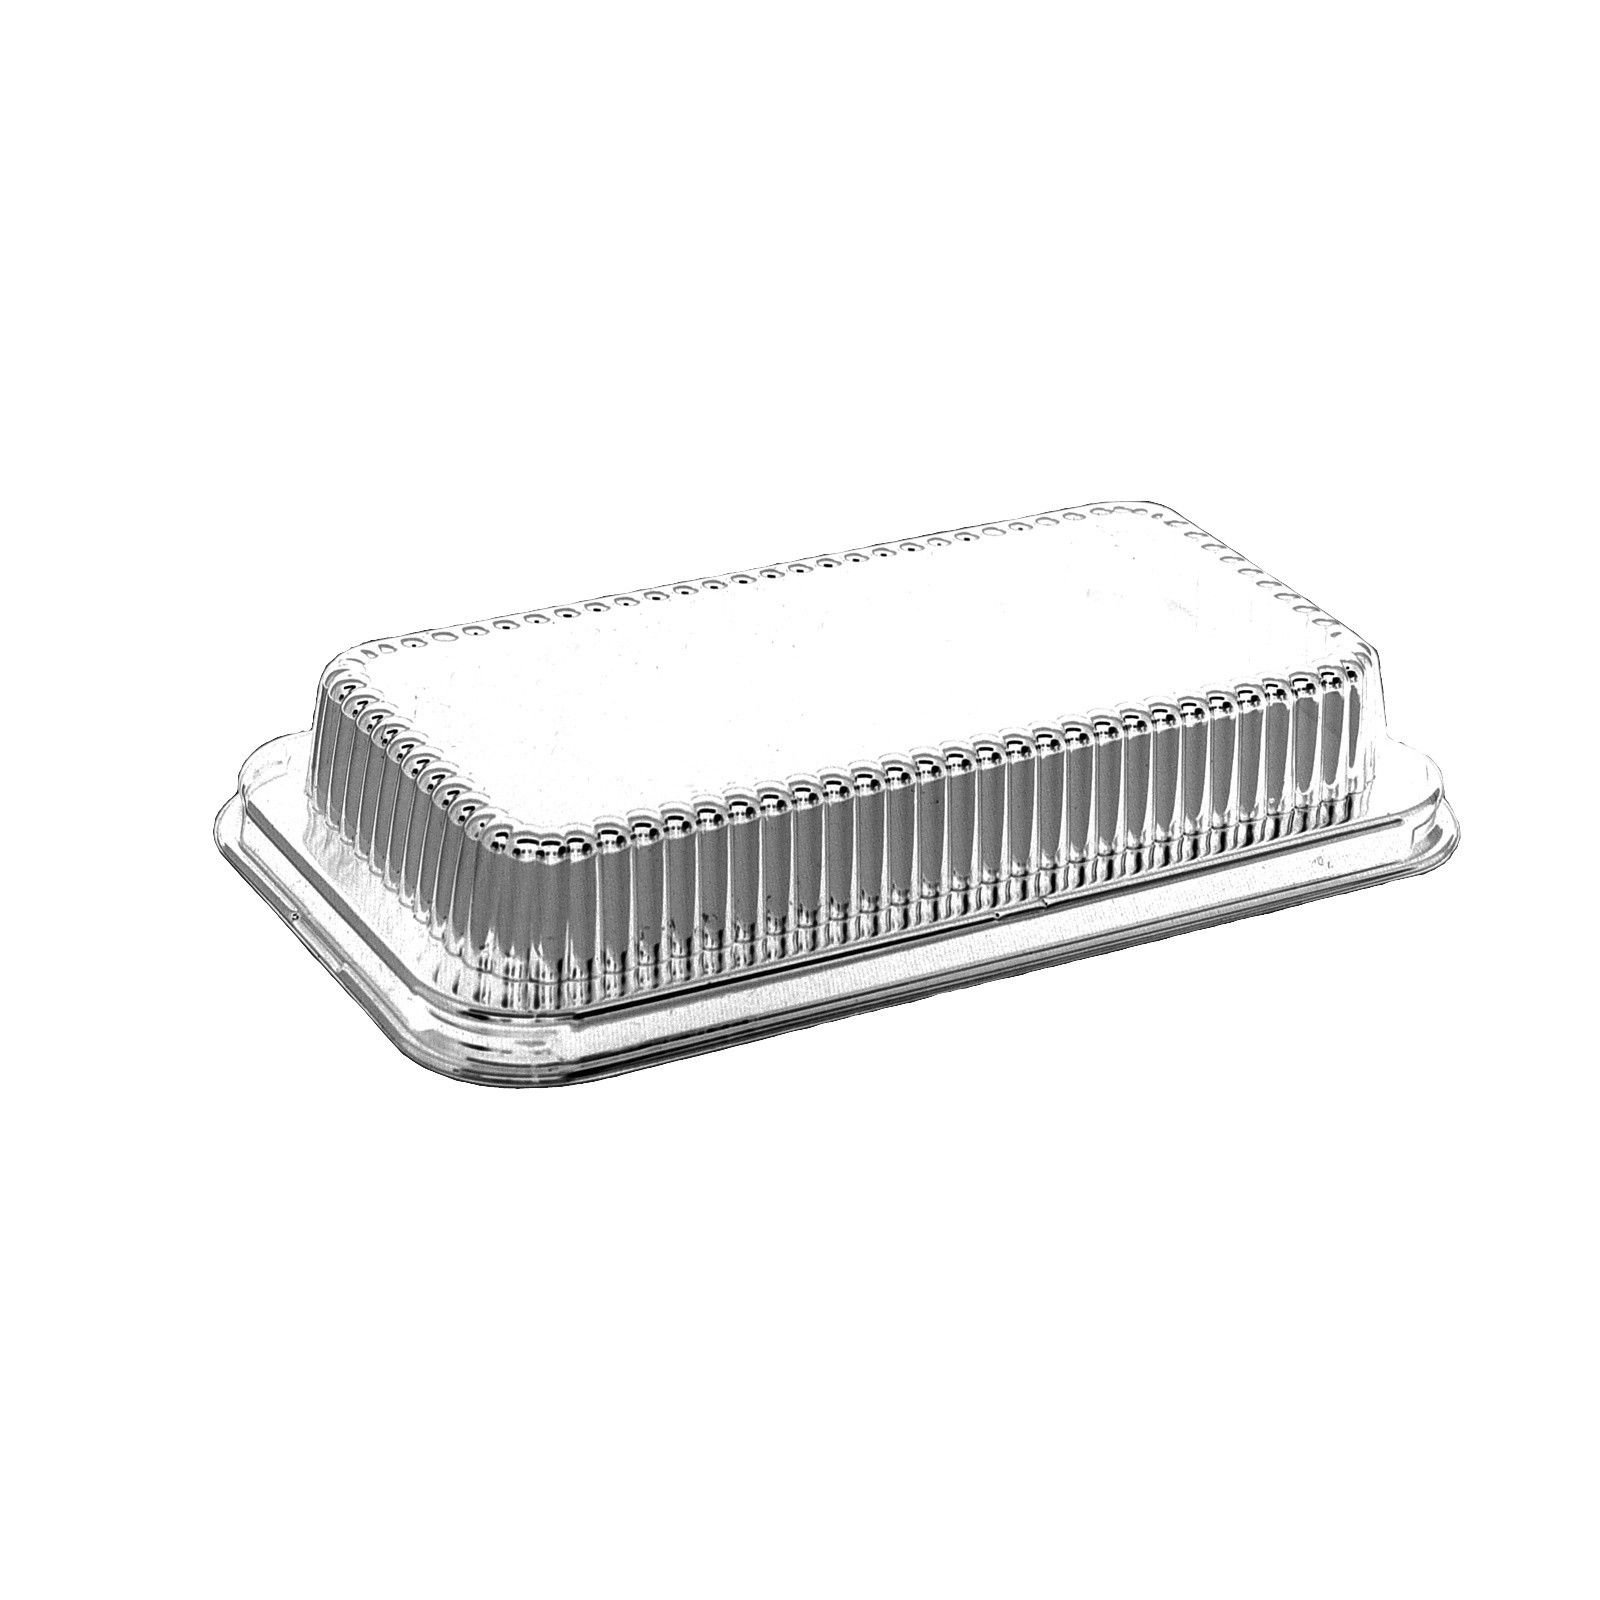 Handi-Foil 2 lb. Aluminum Foil Loaf Bread Pan Tin w/Dome Lid Heavy Duty Hfa #316 (pack of 50)